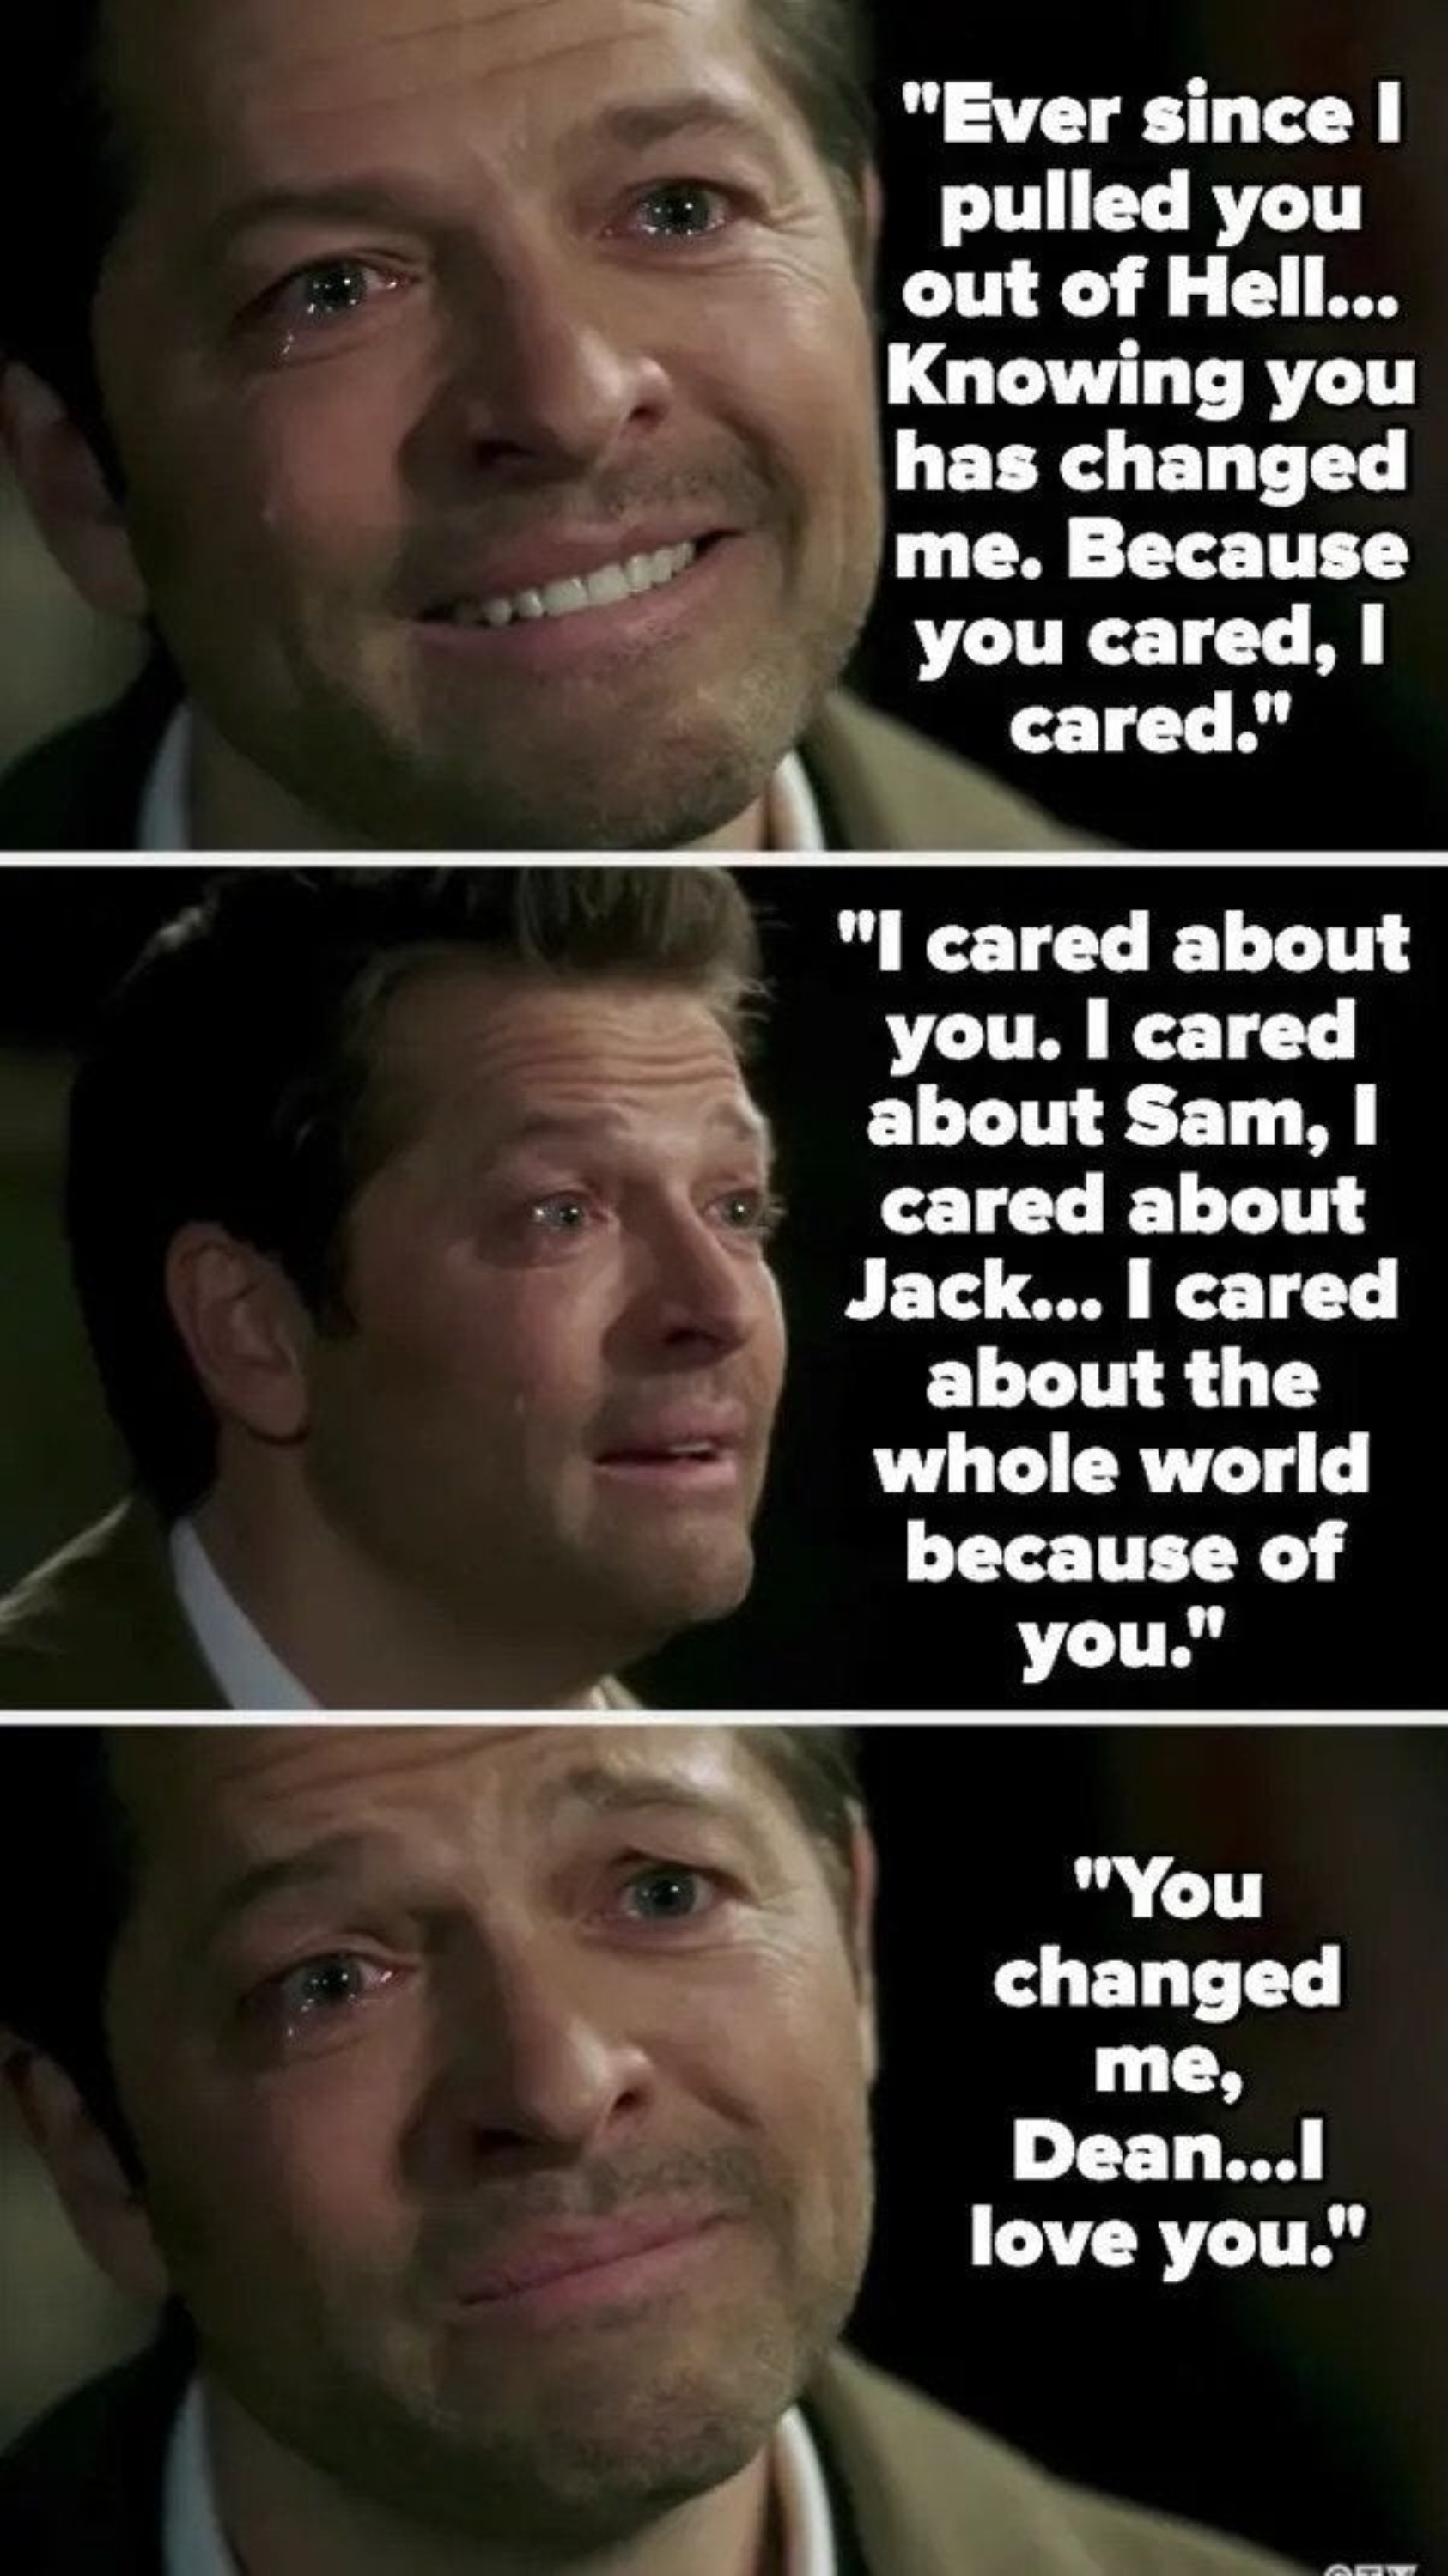 Castiel tells Dean knowing him has changed him, and that he cared about the whole world because of him, and that he love him